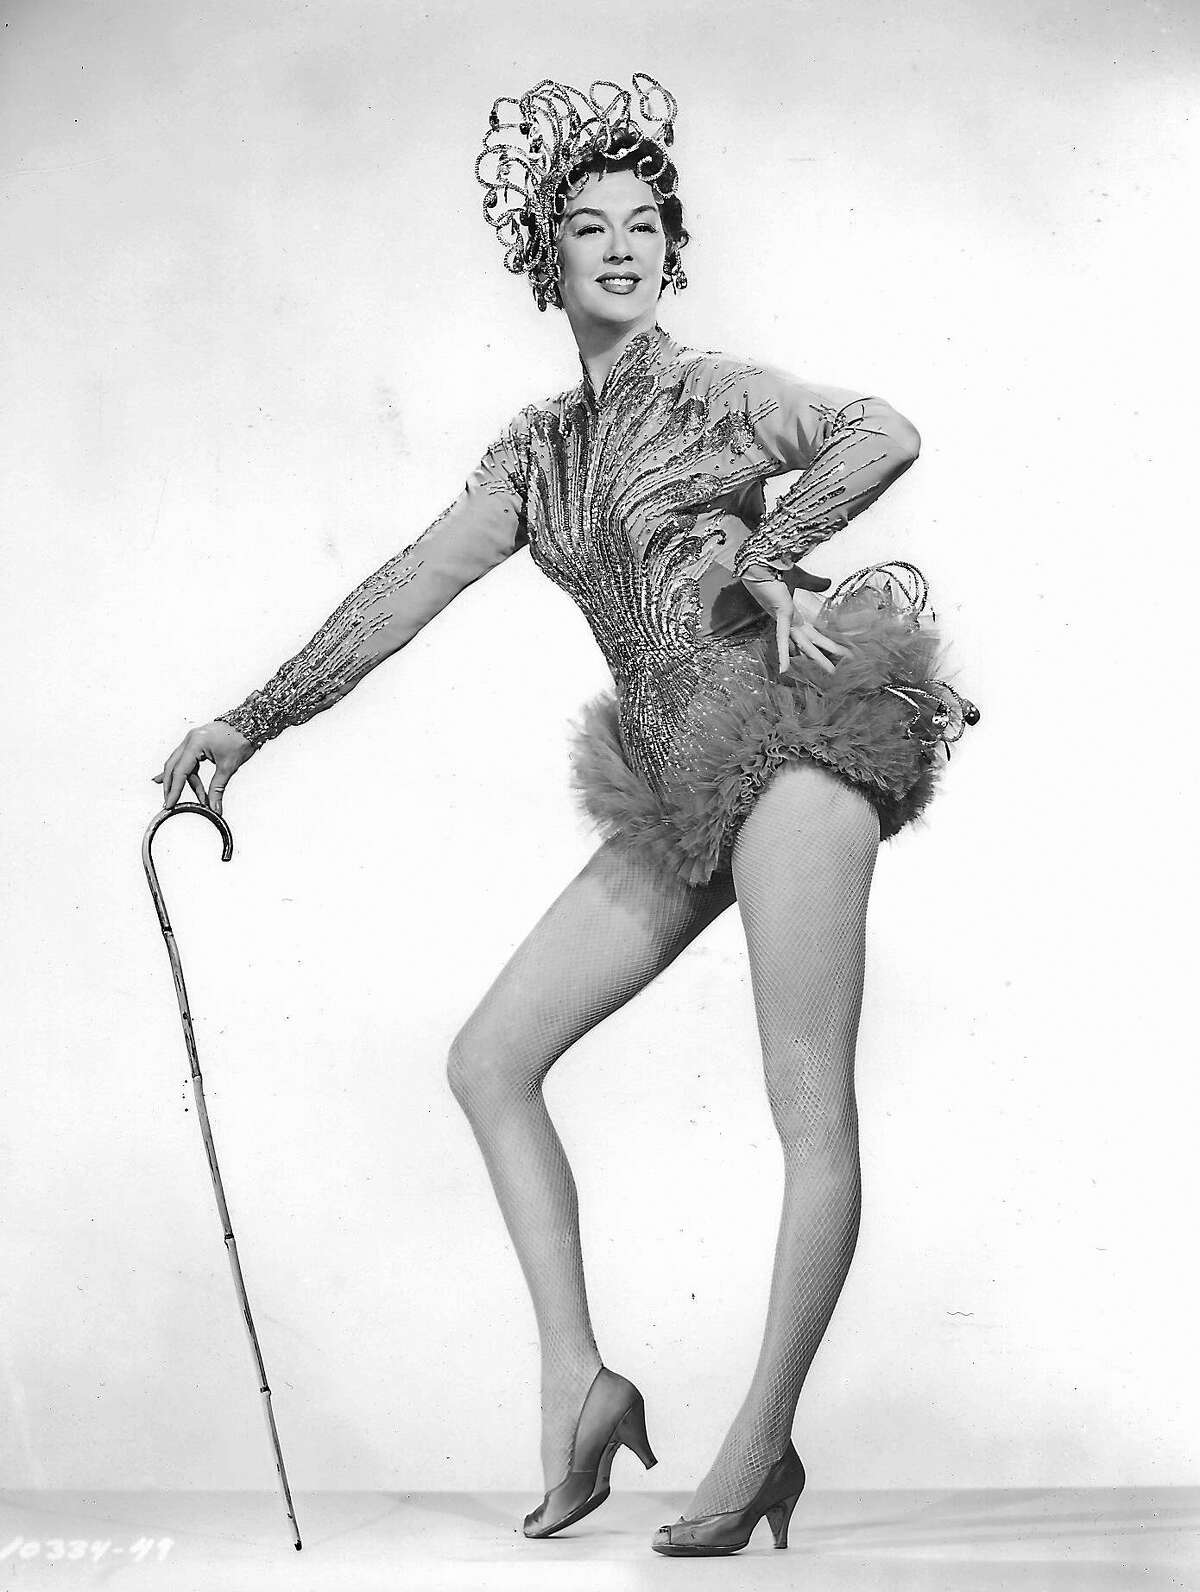 Contributed photoA program on the amazing career of Rosalind Russell will be held at the Mattatuck Museum on June 8.